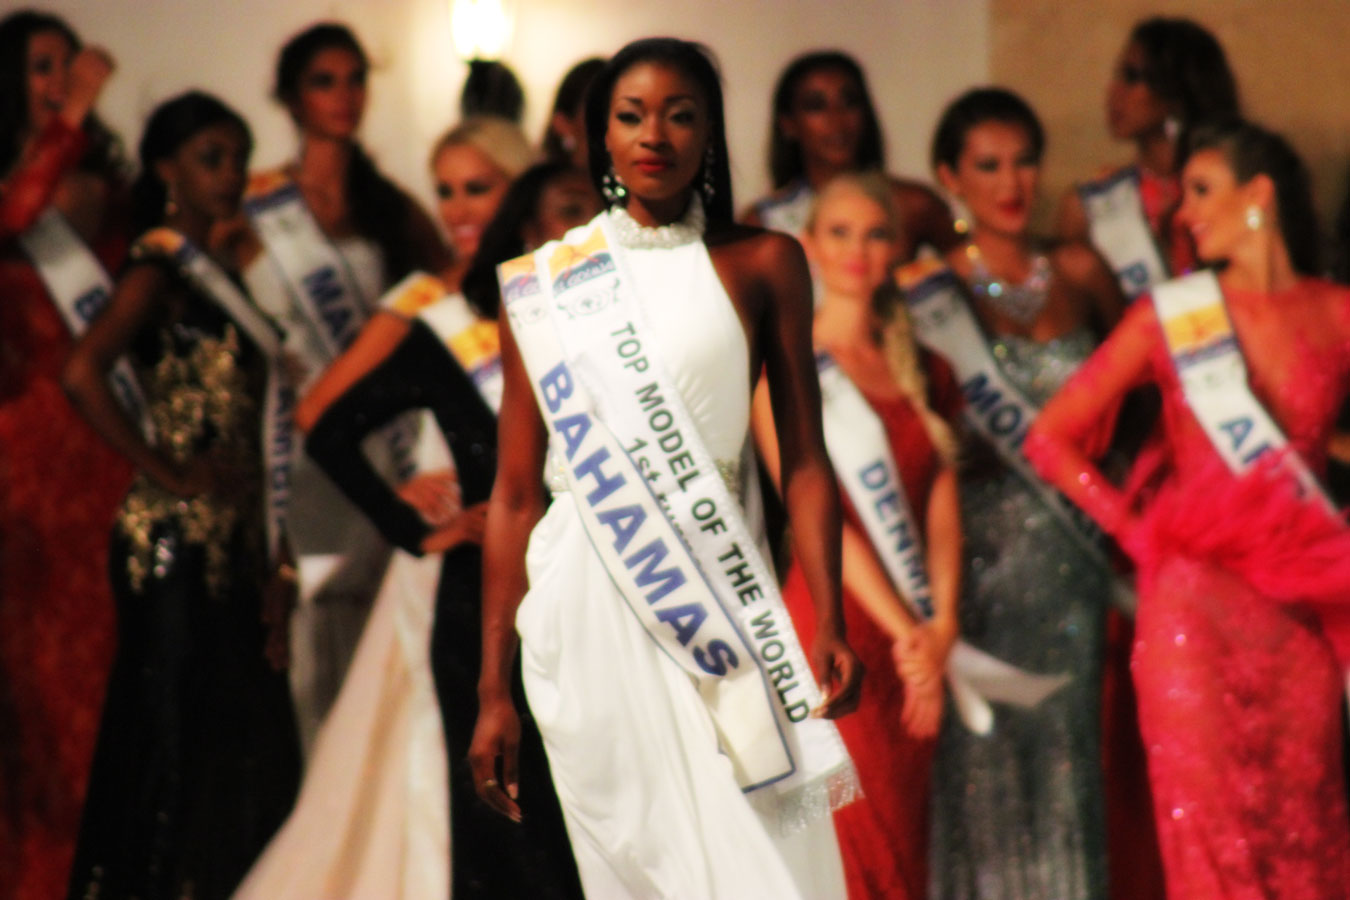 Bahamas Masqueraders Brand Ambassador Celeste Marshall named first runner up at the 22nd annual Top Model of the World